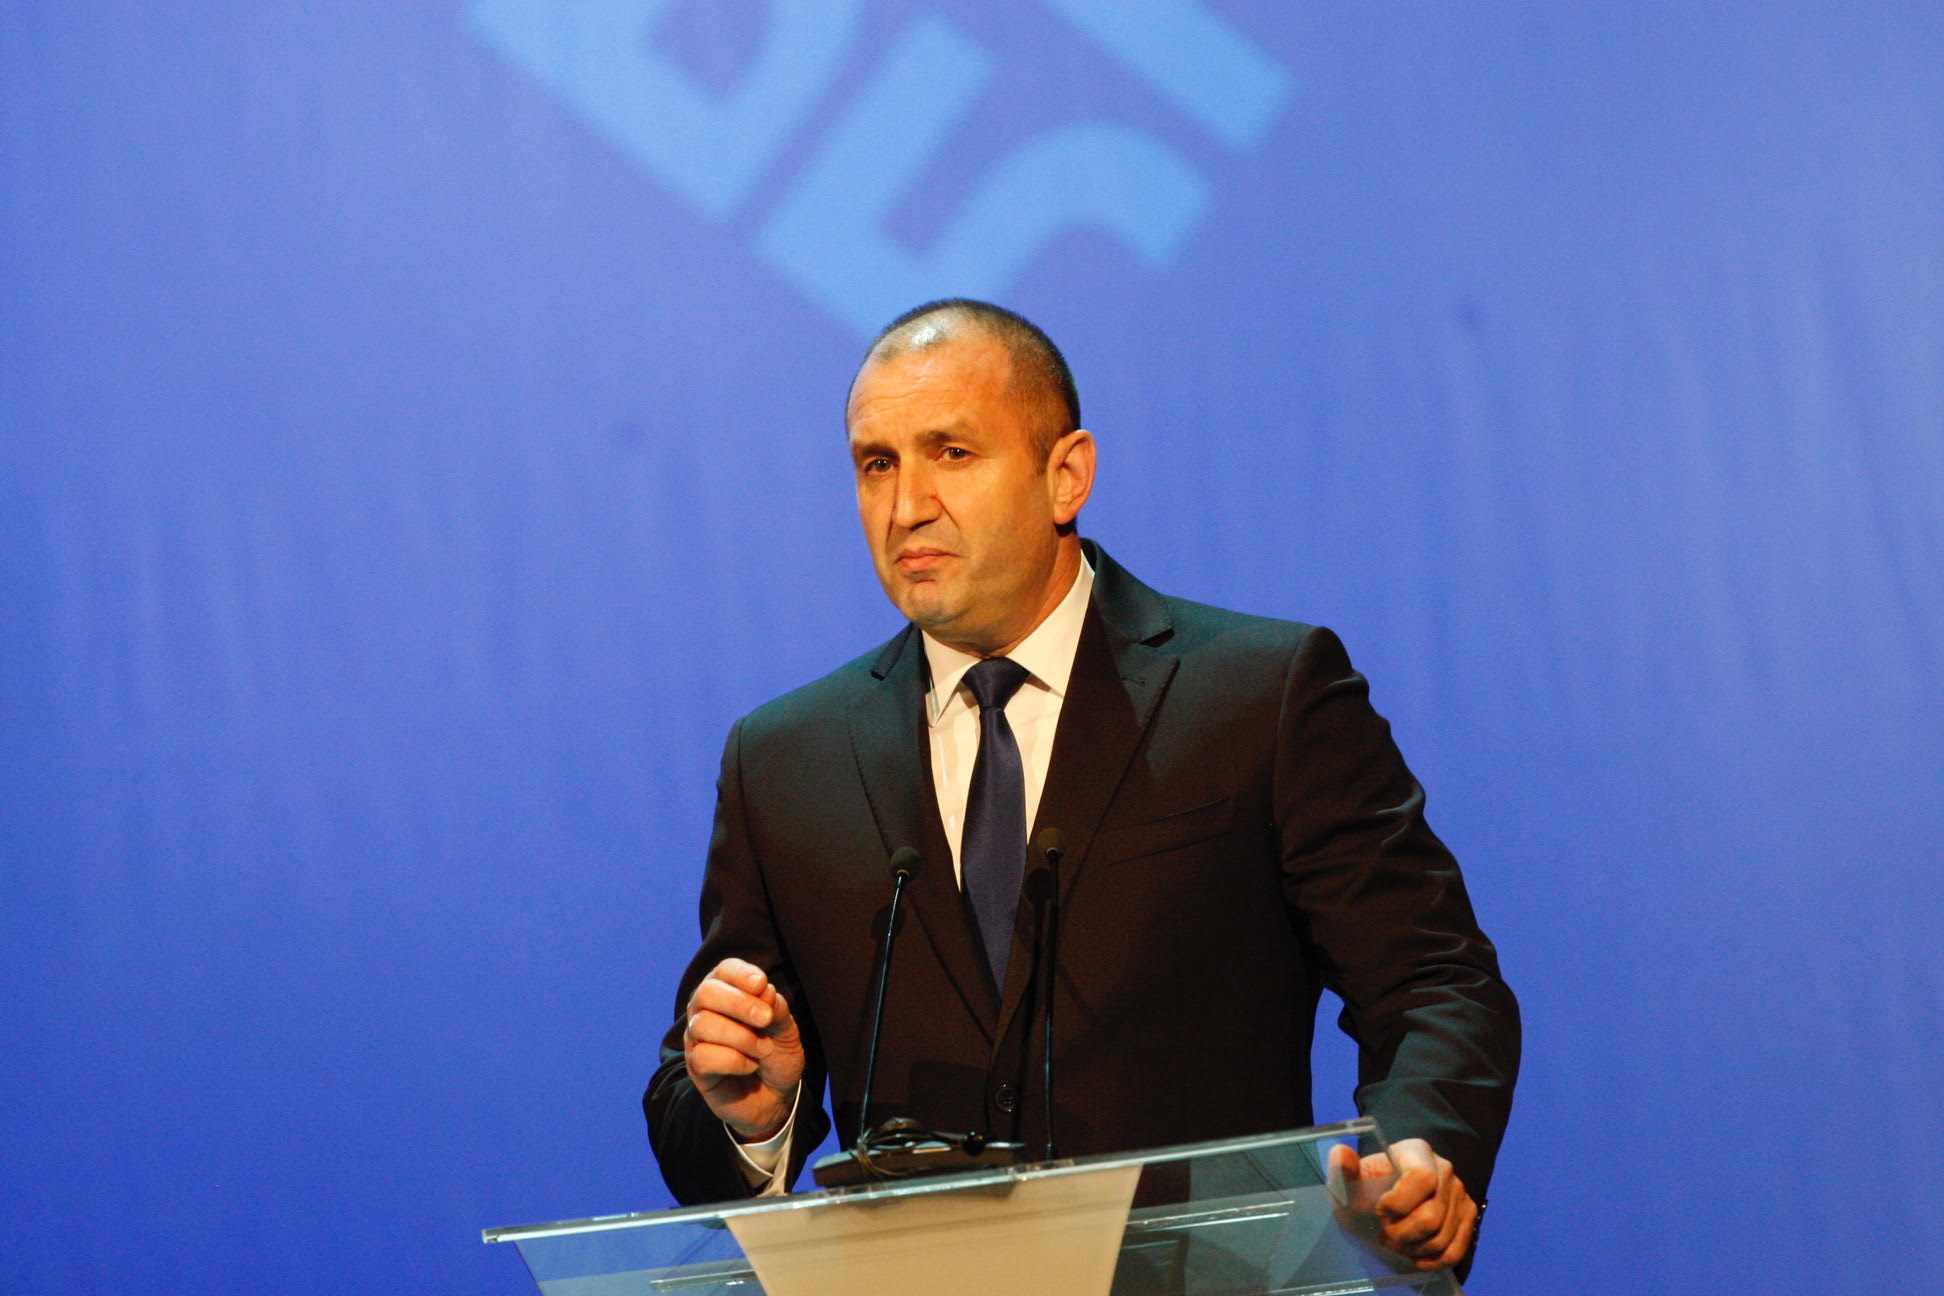 Bulgarian President: 2025 horizon for Western Balkans countries EU accession is incentive for reforms